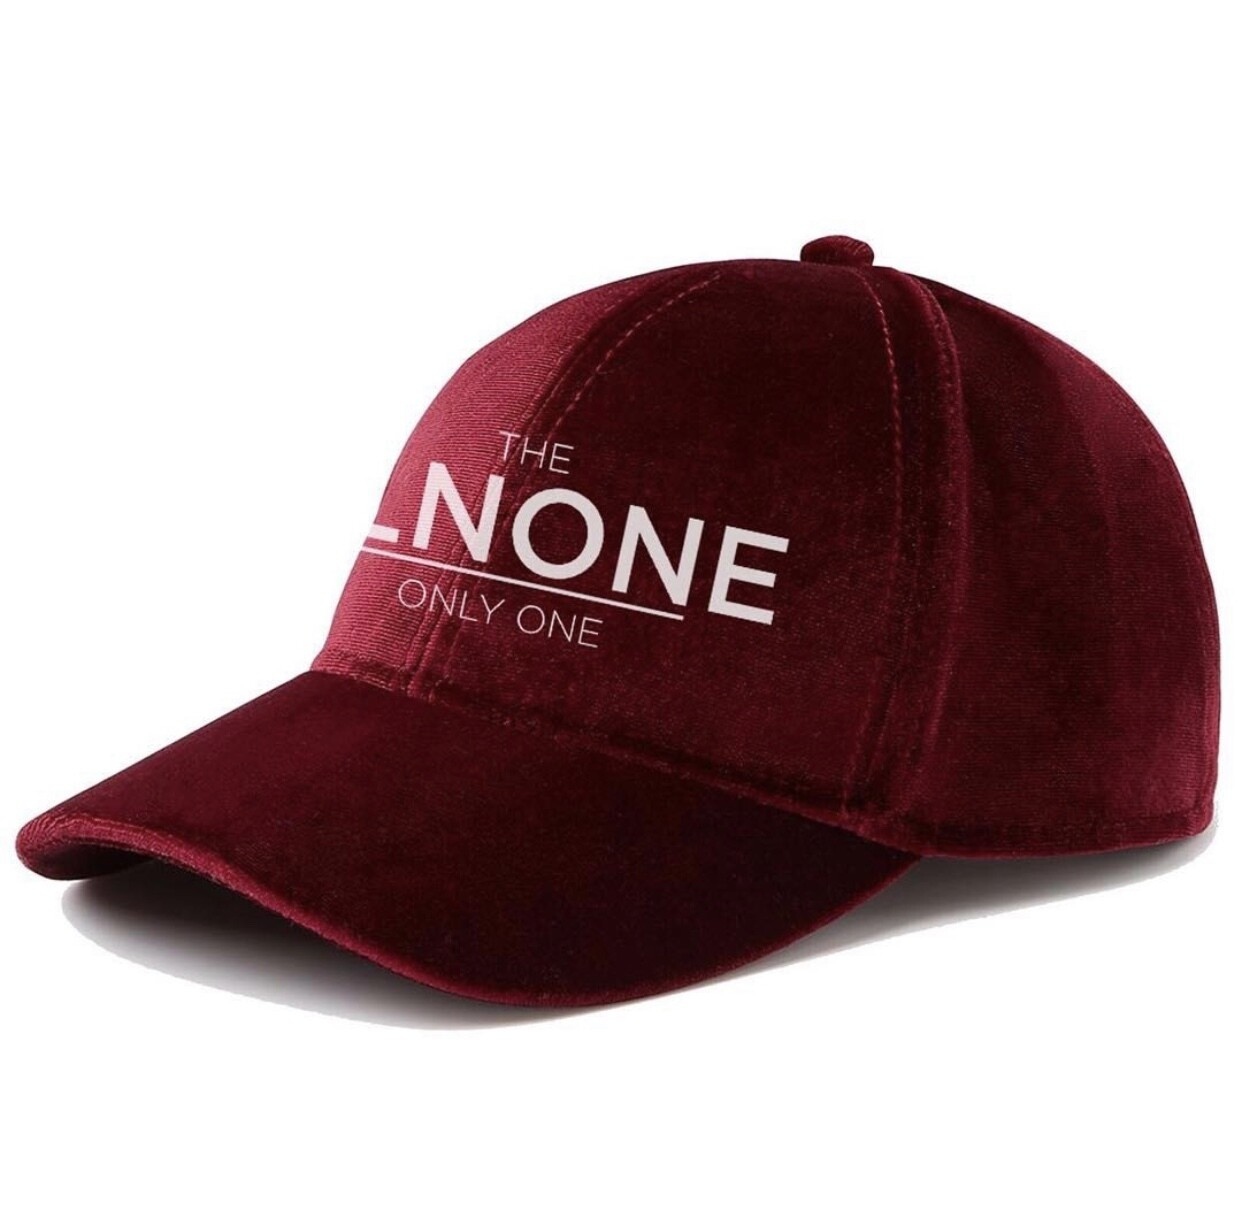 The Only One - Suede Dad Hat